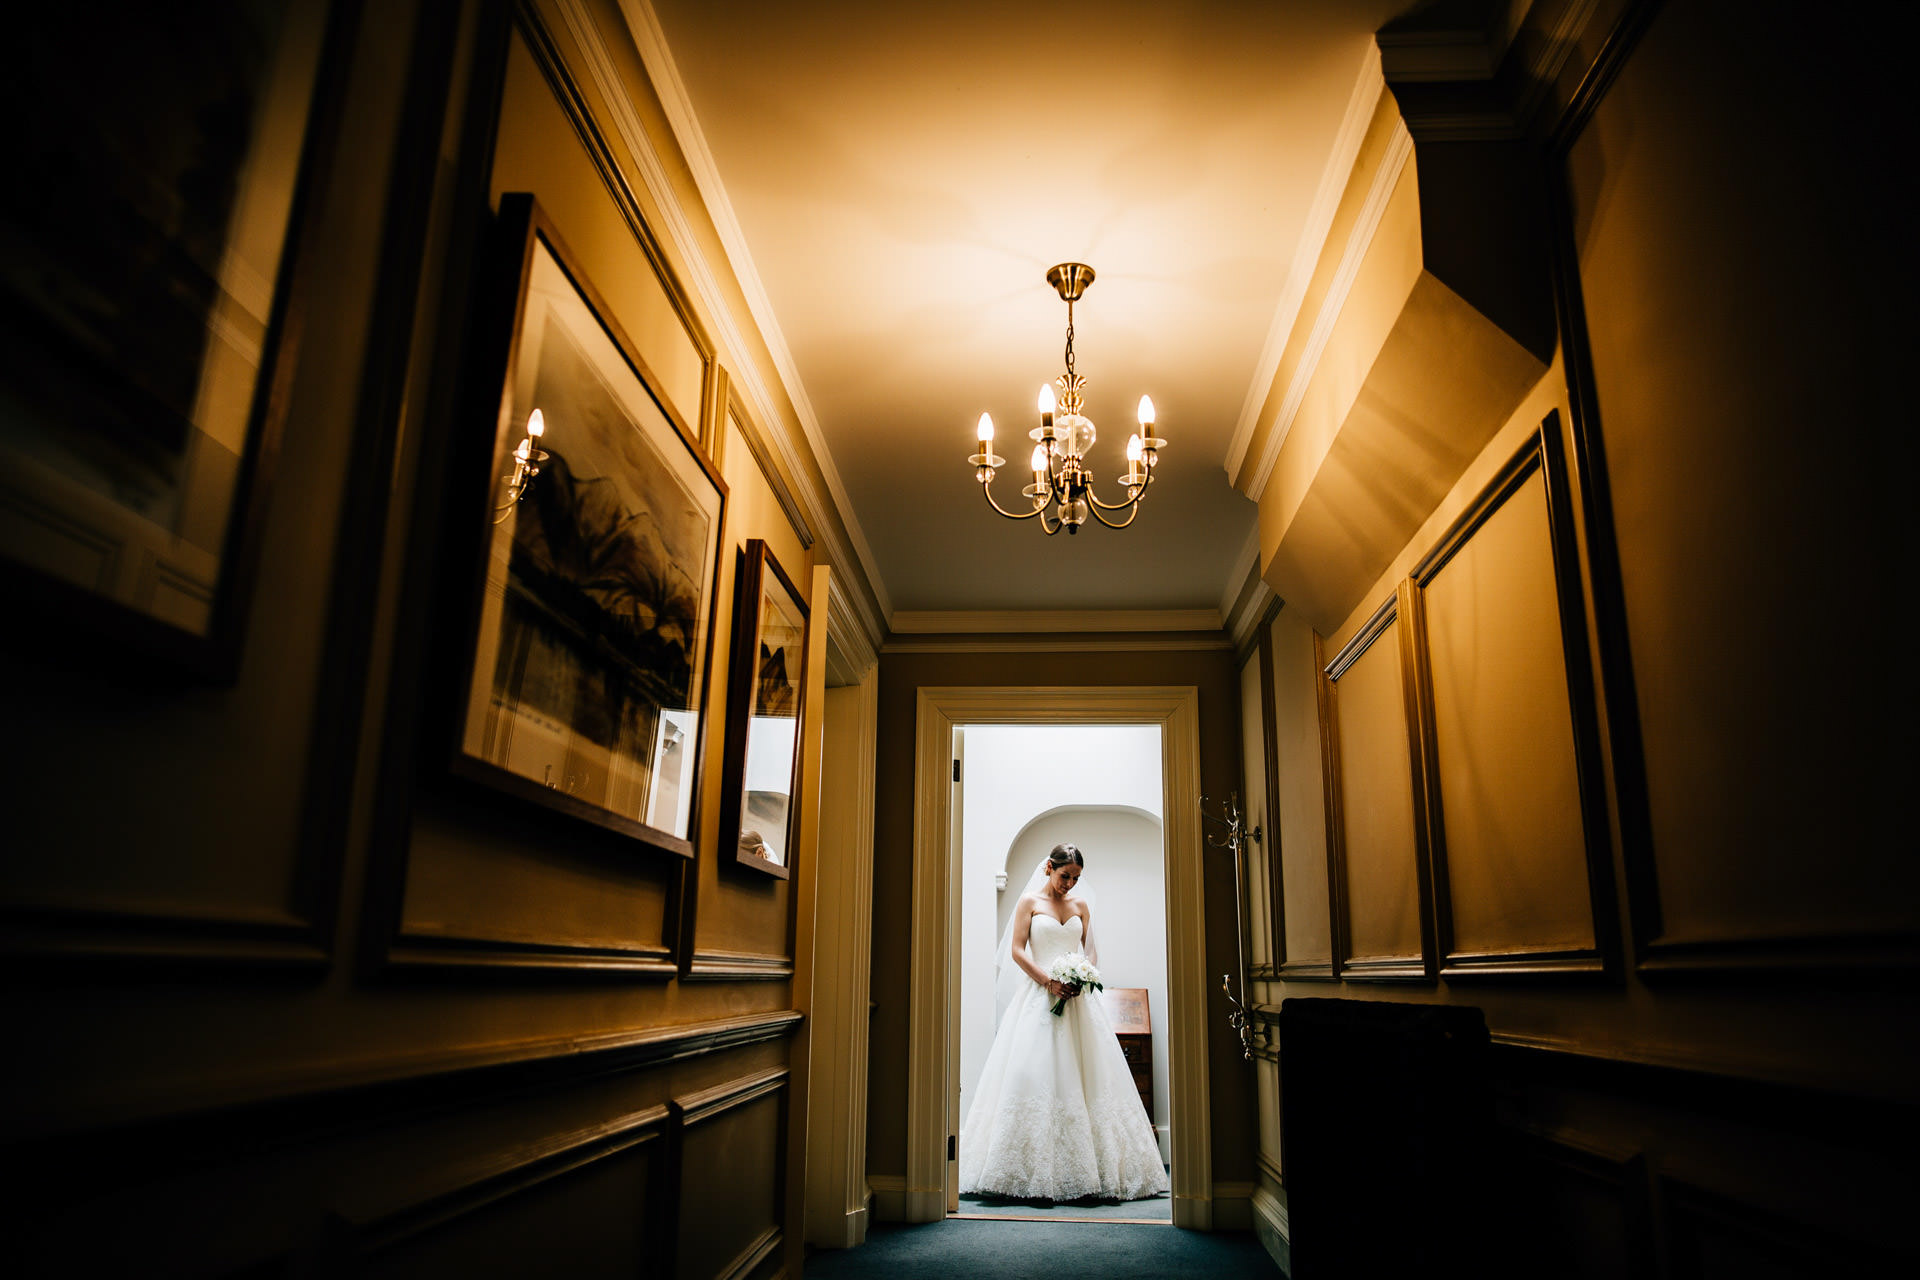 Best wedding photography 2016 - bride at the end of corridor